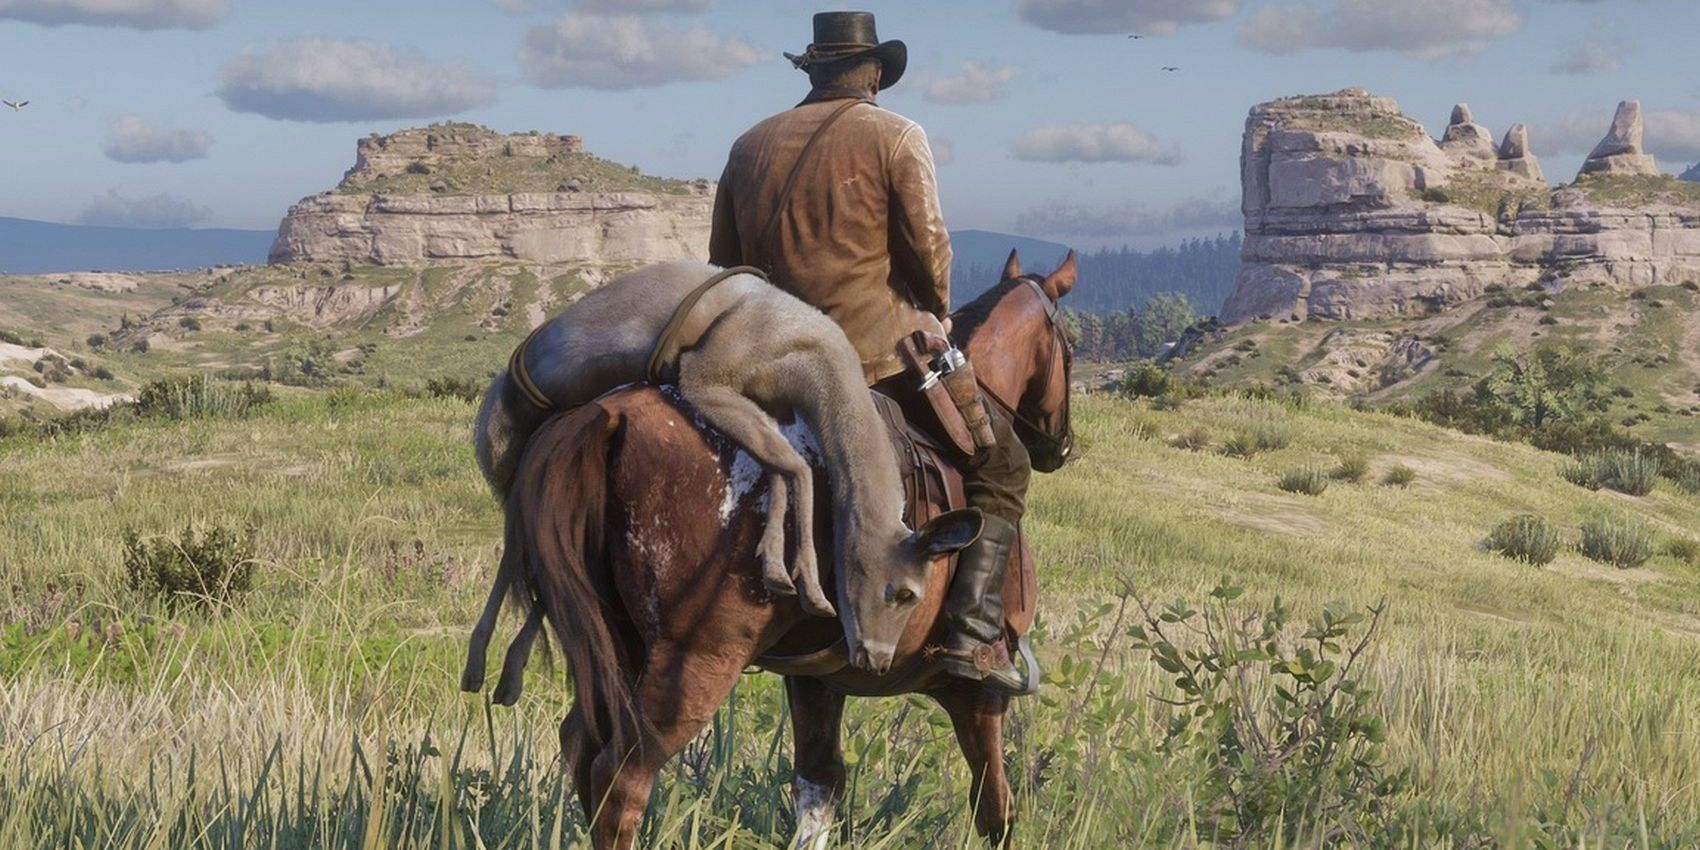 Red Dead Redemption 2 Glitch Allows Players To Enter Mexico – Here's How